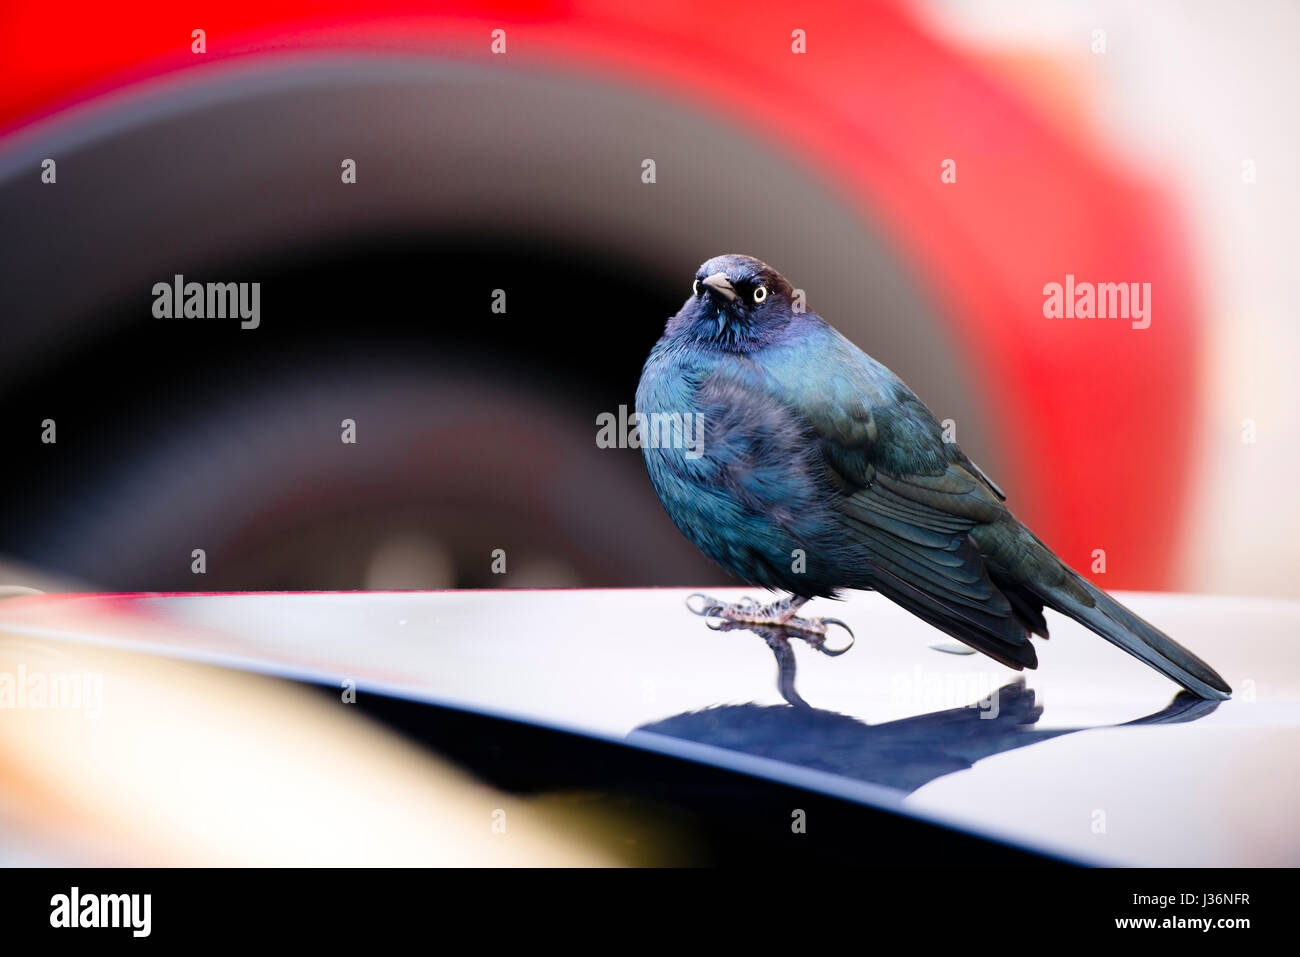 Small bird with a small beak and colored blue and black feathers sitting on the hood of the car in the parking lot - Stock Image